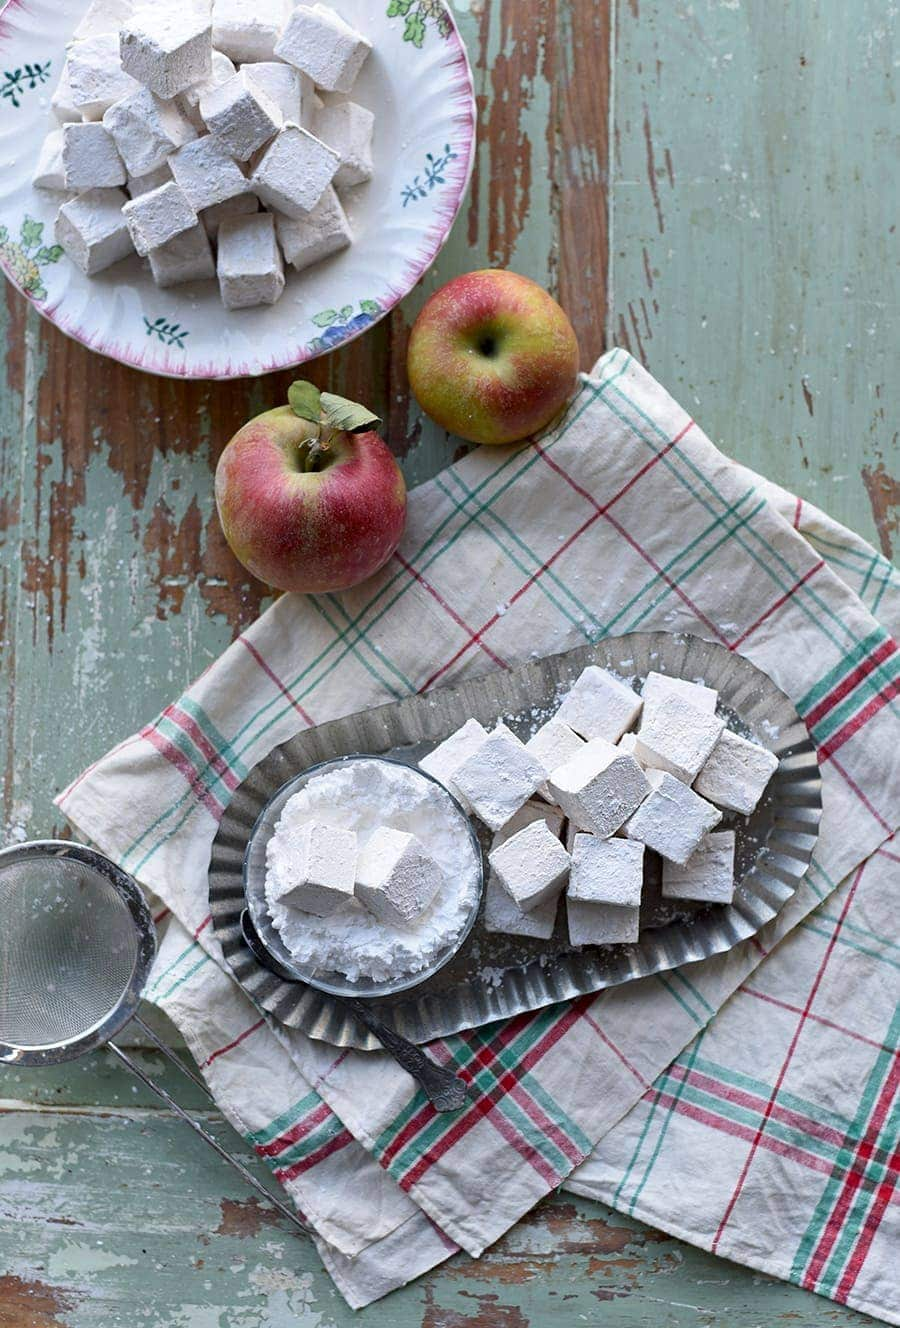 Dredging caramel apple marshmallows in powdered sugar